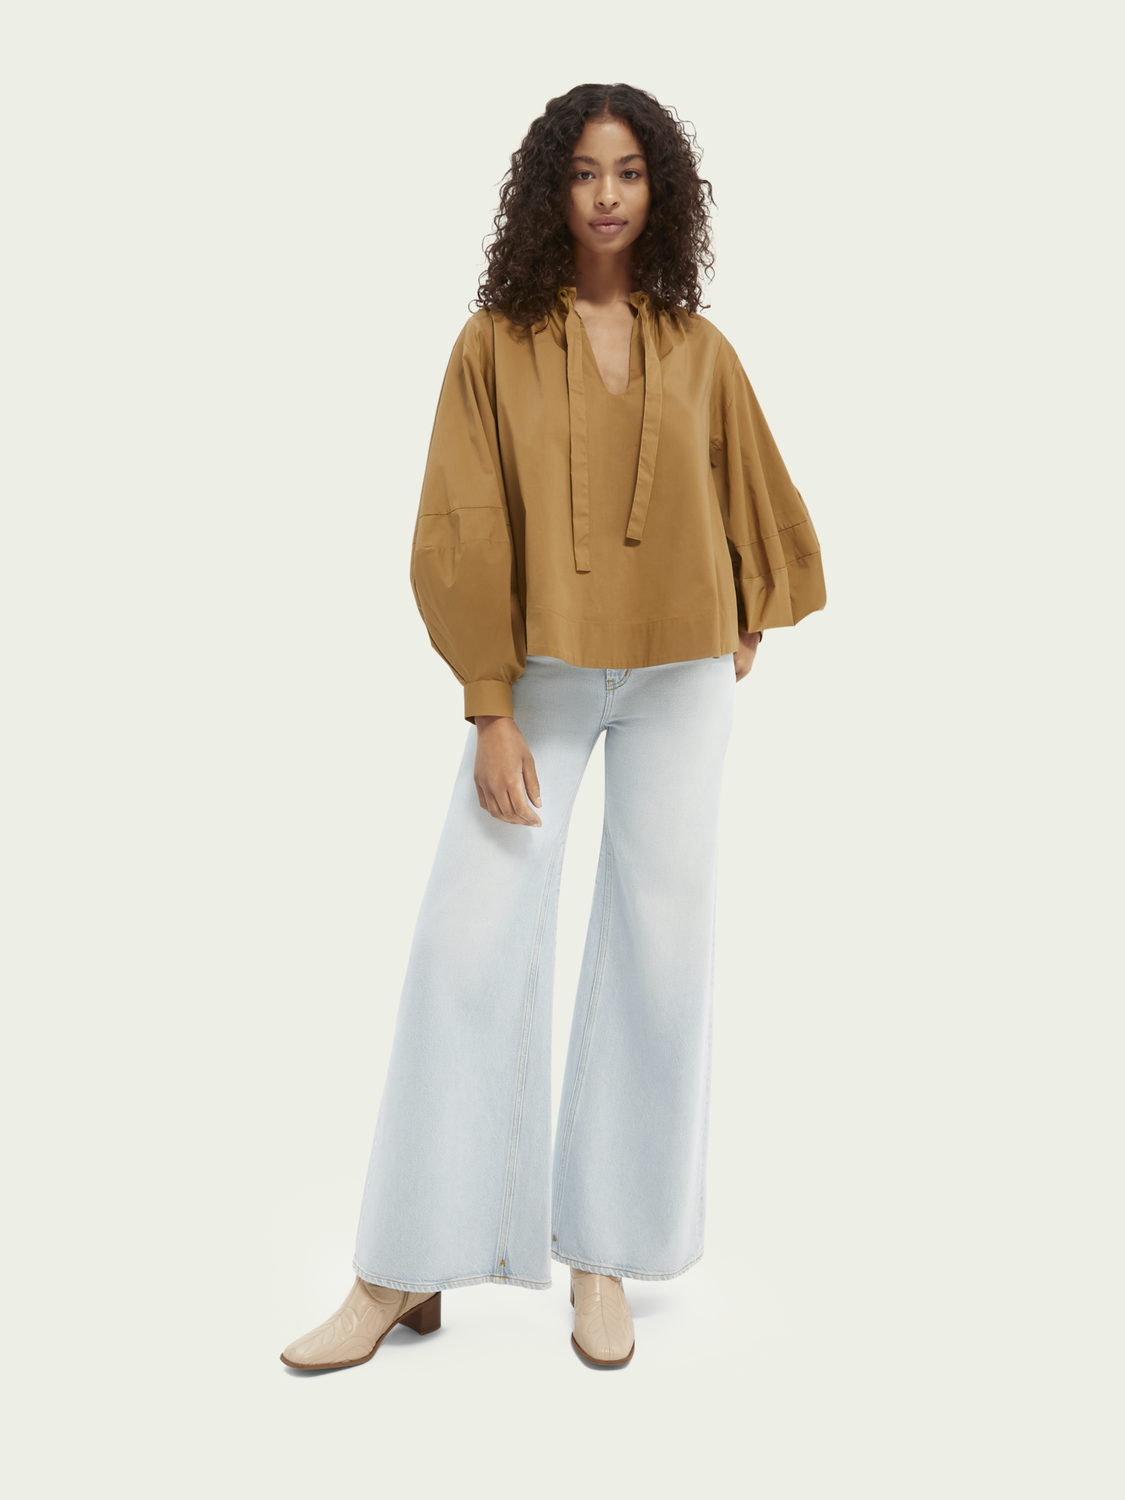 Promo Puffed long-sleeved blouse